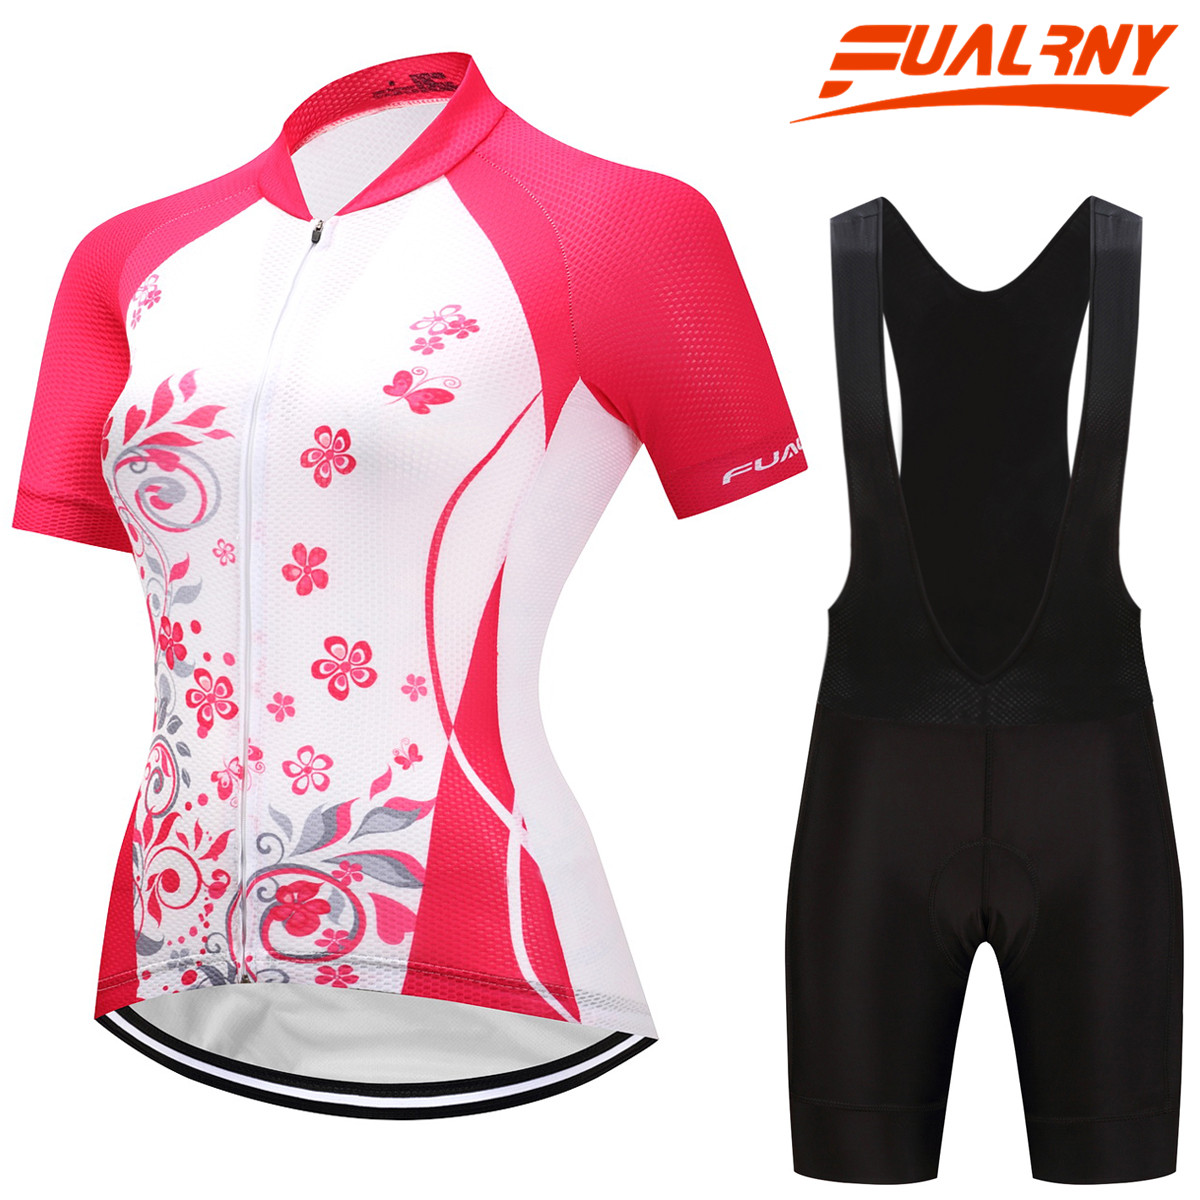 FUALRNY Women Bike Shirt 100% Polyester Breathable Bicycle Clothes Summer UV Cycling Jersey Set Short Sleeve Cycling Clothing